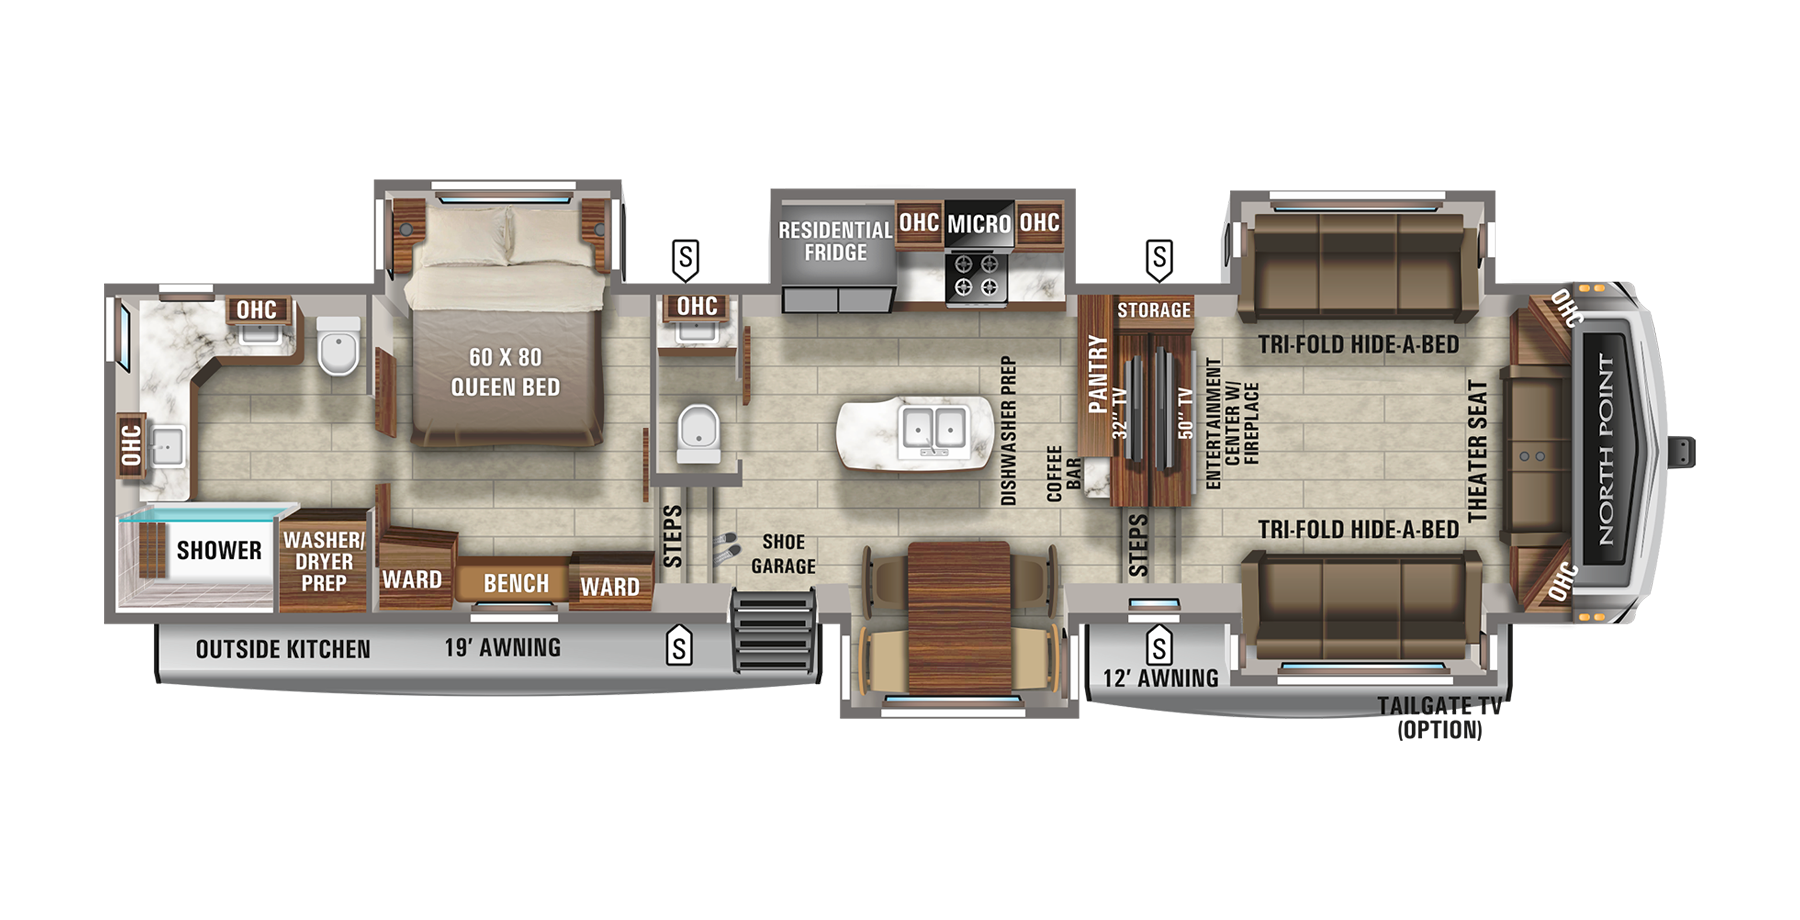 Top 4 Fifth Wheel RV Floorplans